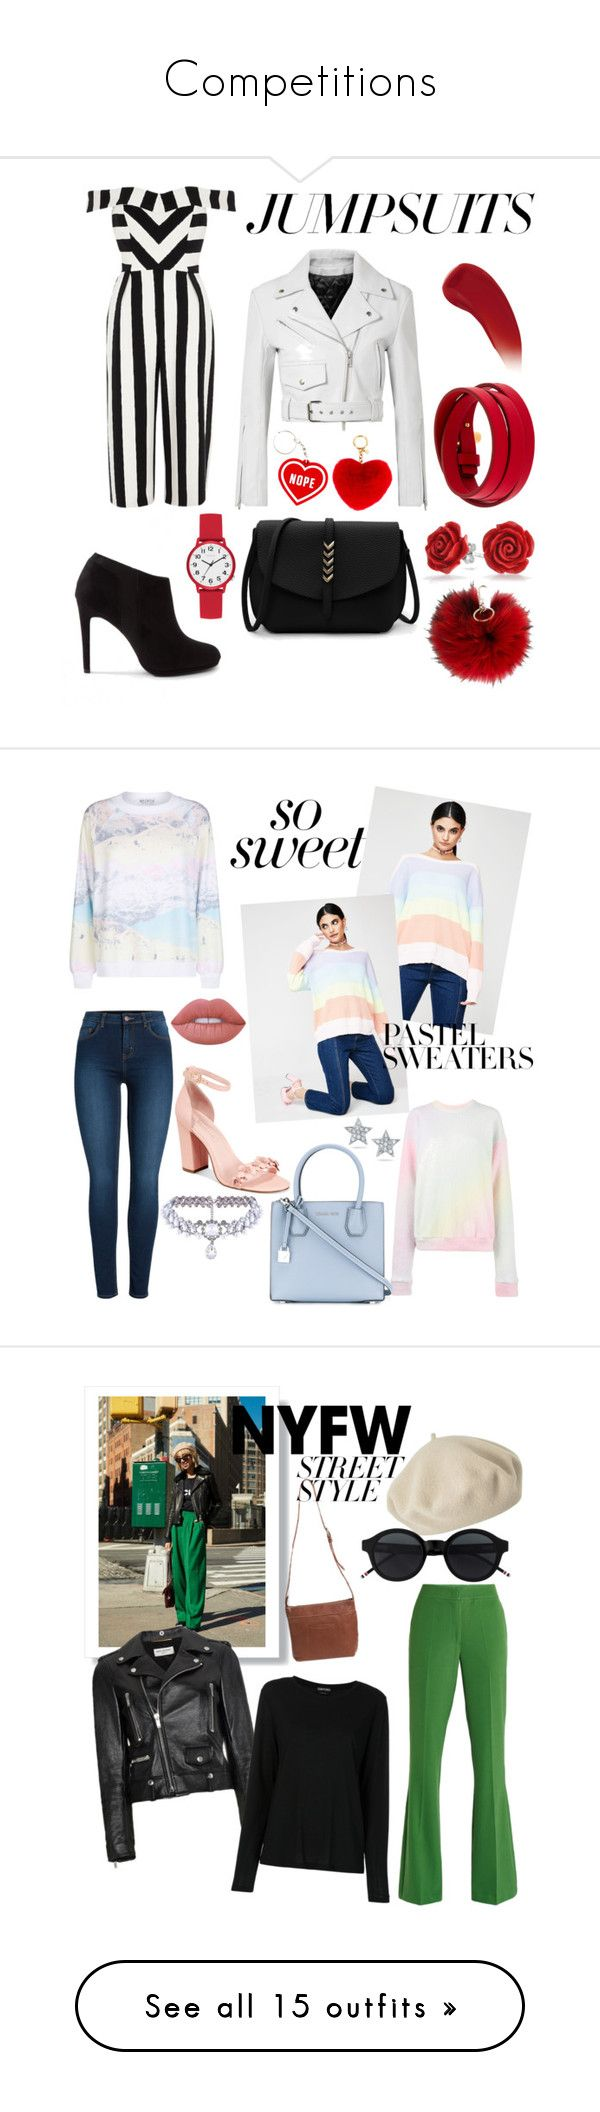 """""""Competitions"""" by gmonster12 ❤ liked on Polyvore featuring River Island, New Look, Calvin Klein 205W39NYC, Lipstick Queen, MICHAEL Michael Kors, Tom Ford, GUESS, Bling Jewelry, Furla and jumpsuits"""